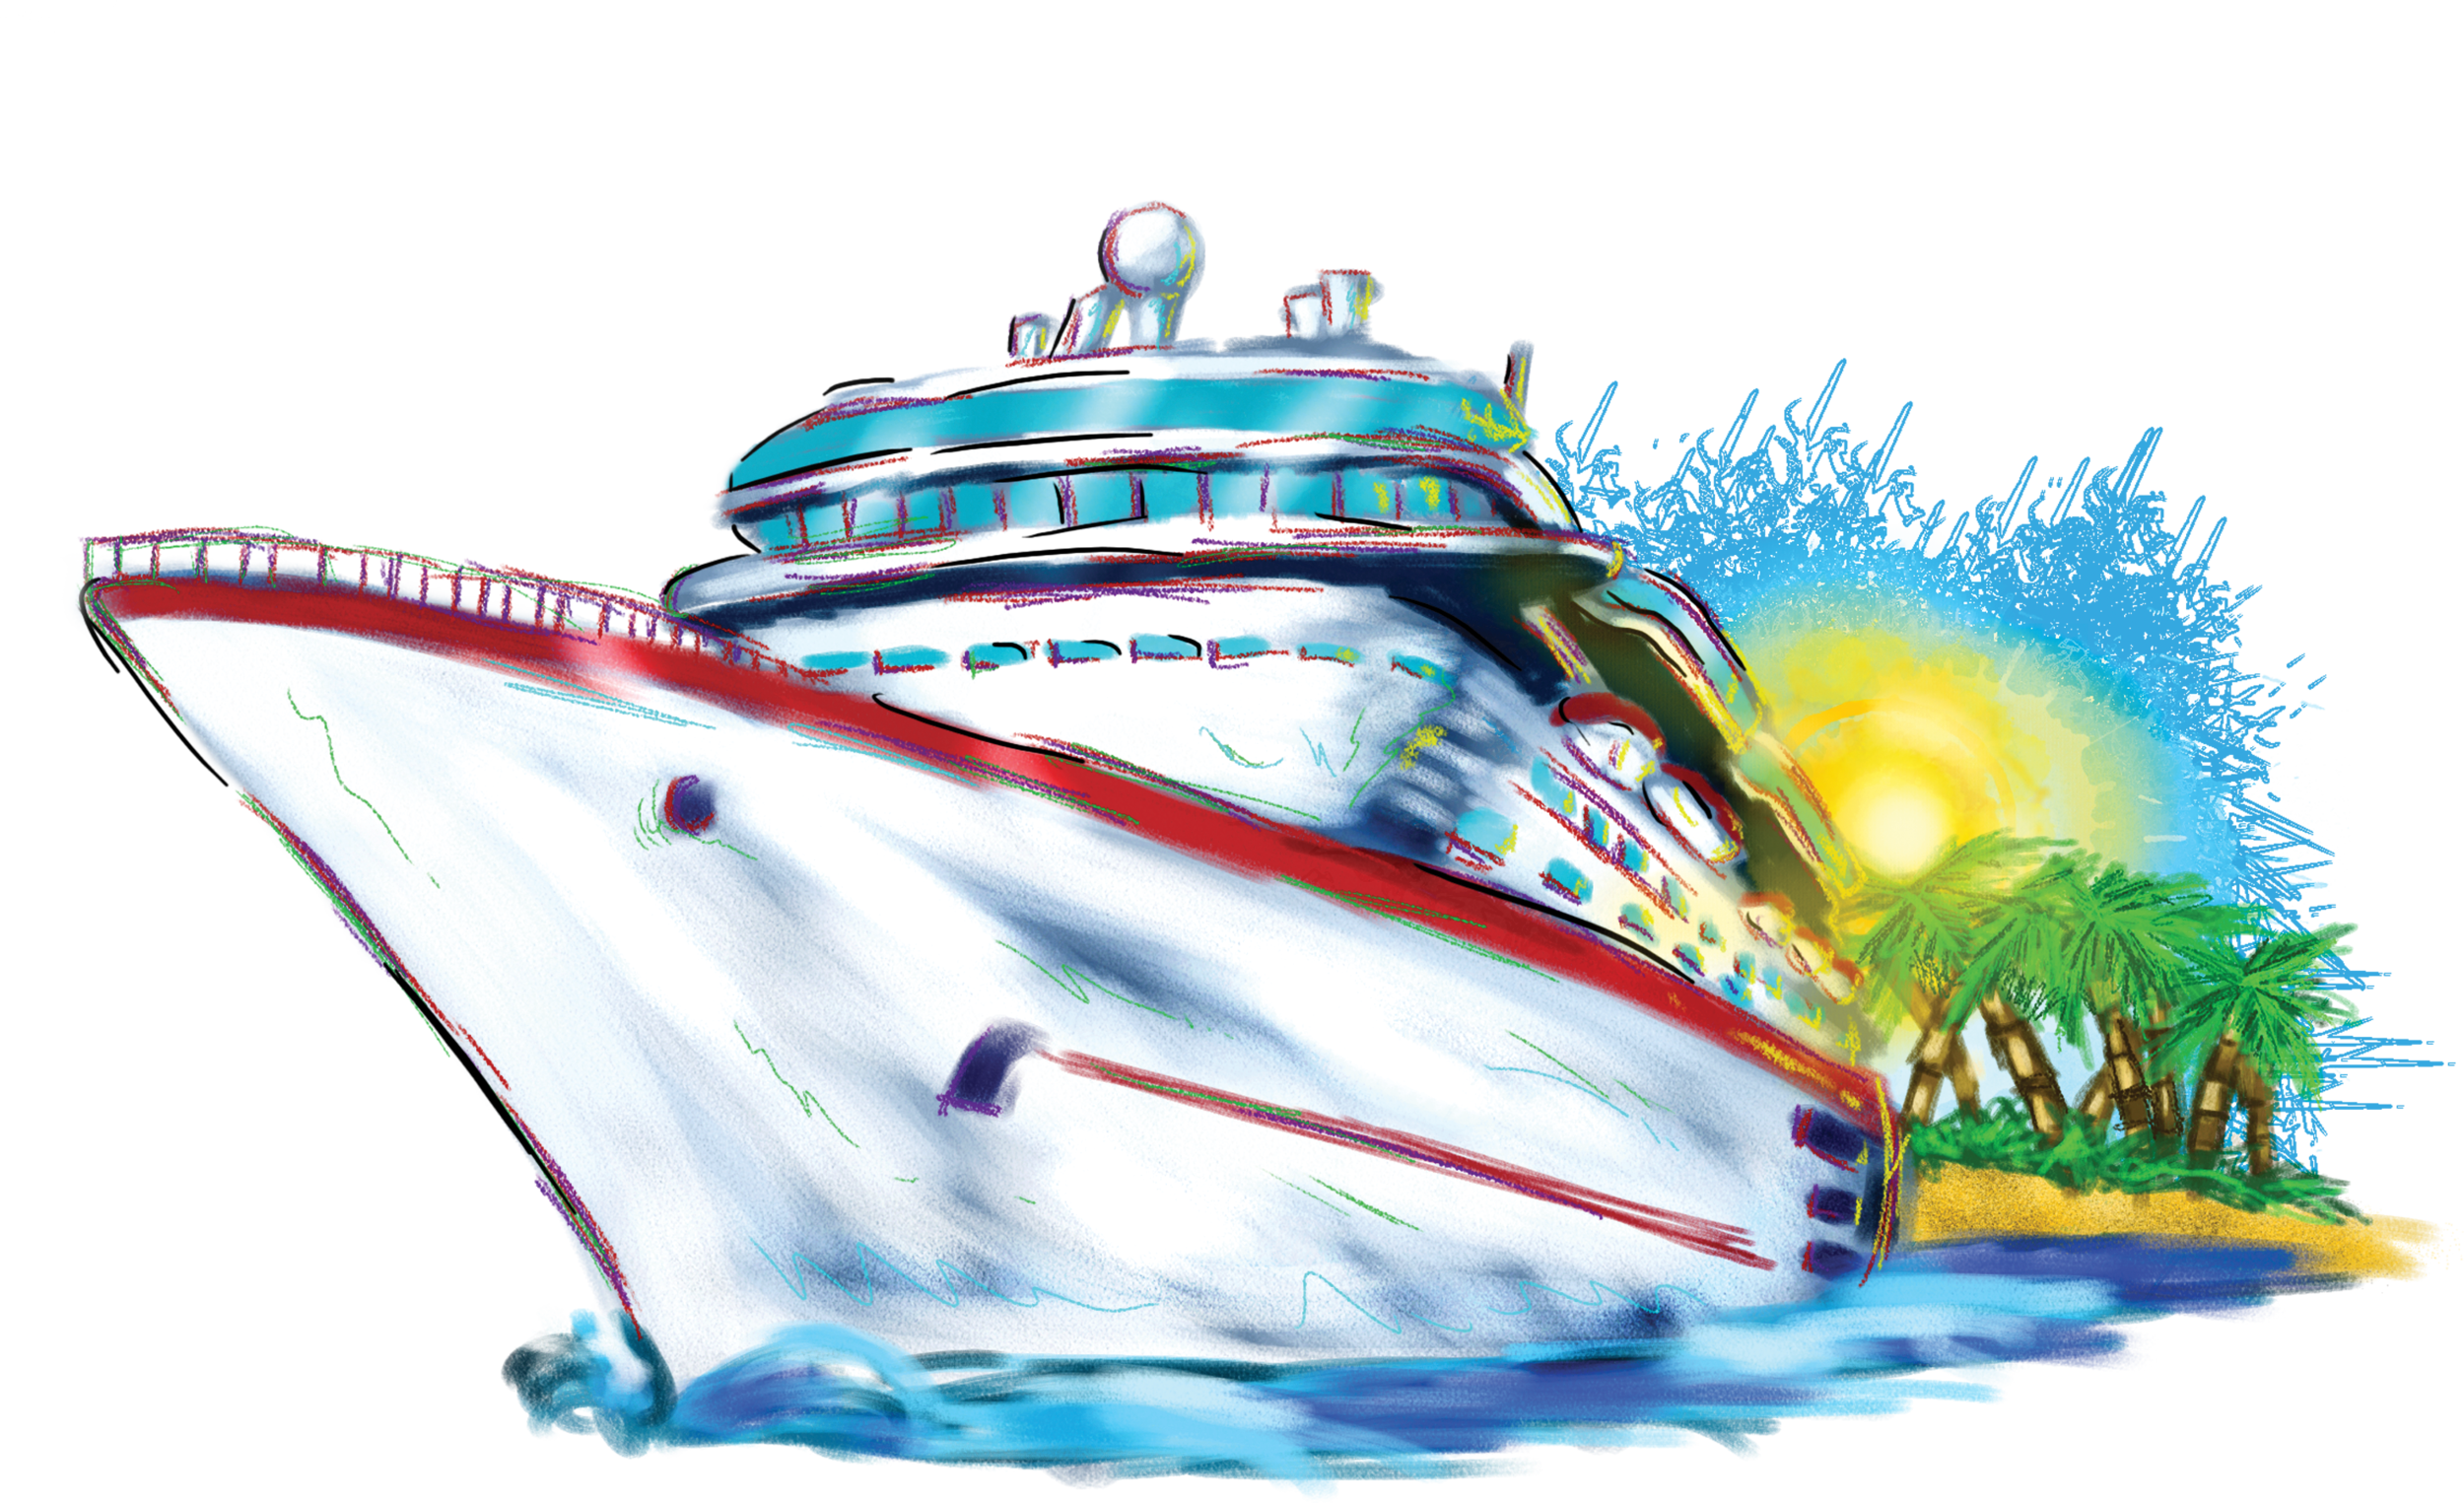 ... Free Clip Art Images. Vacation Cruise Ship The .